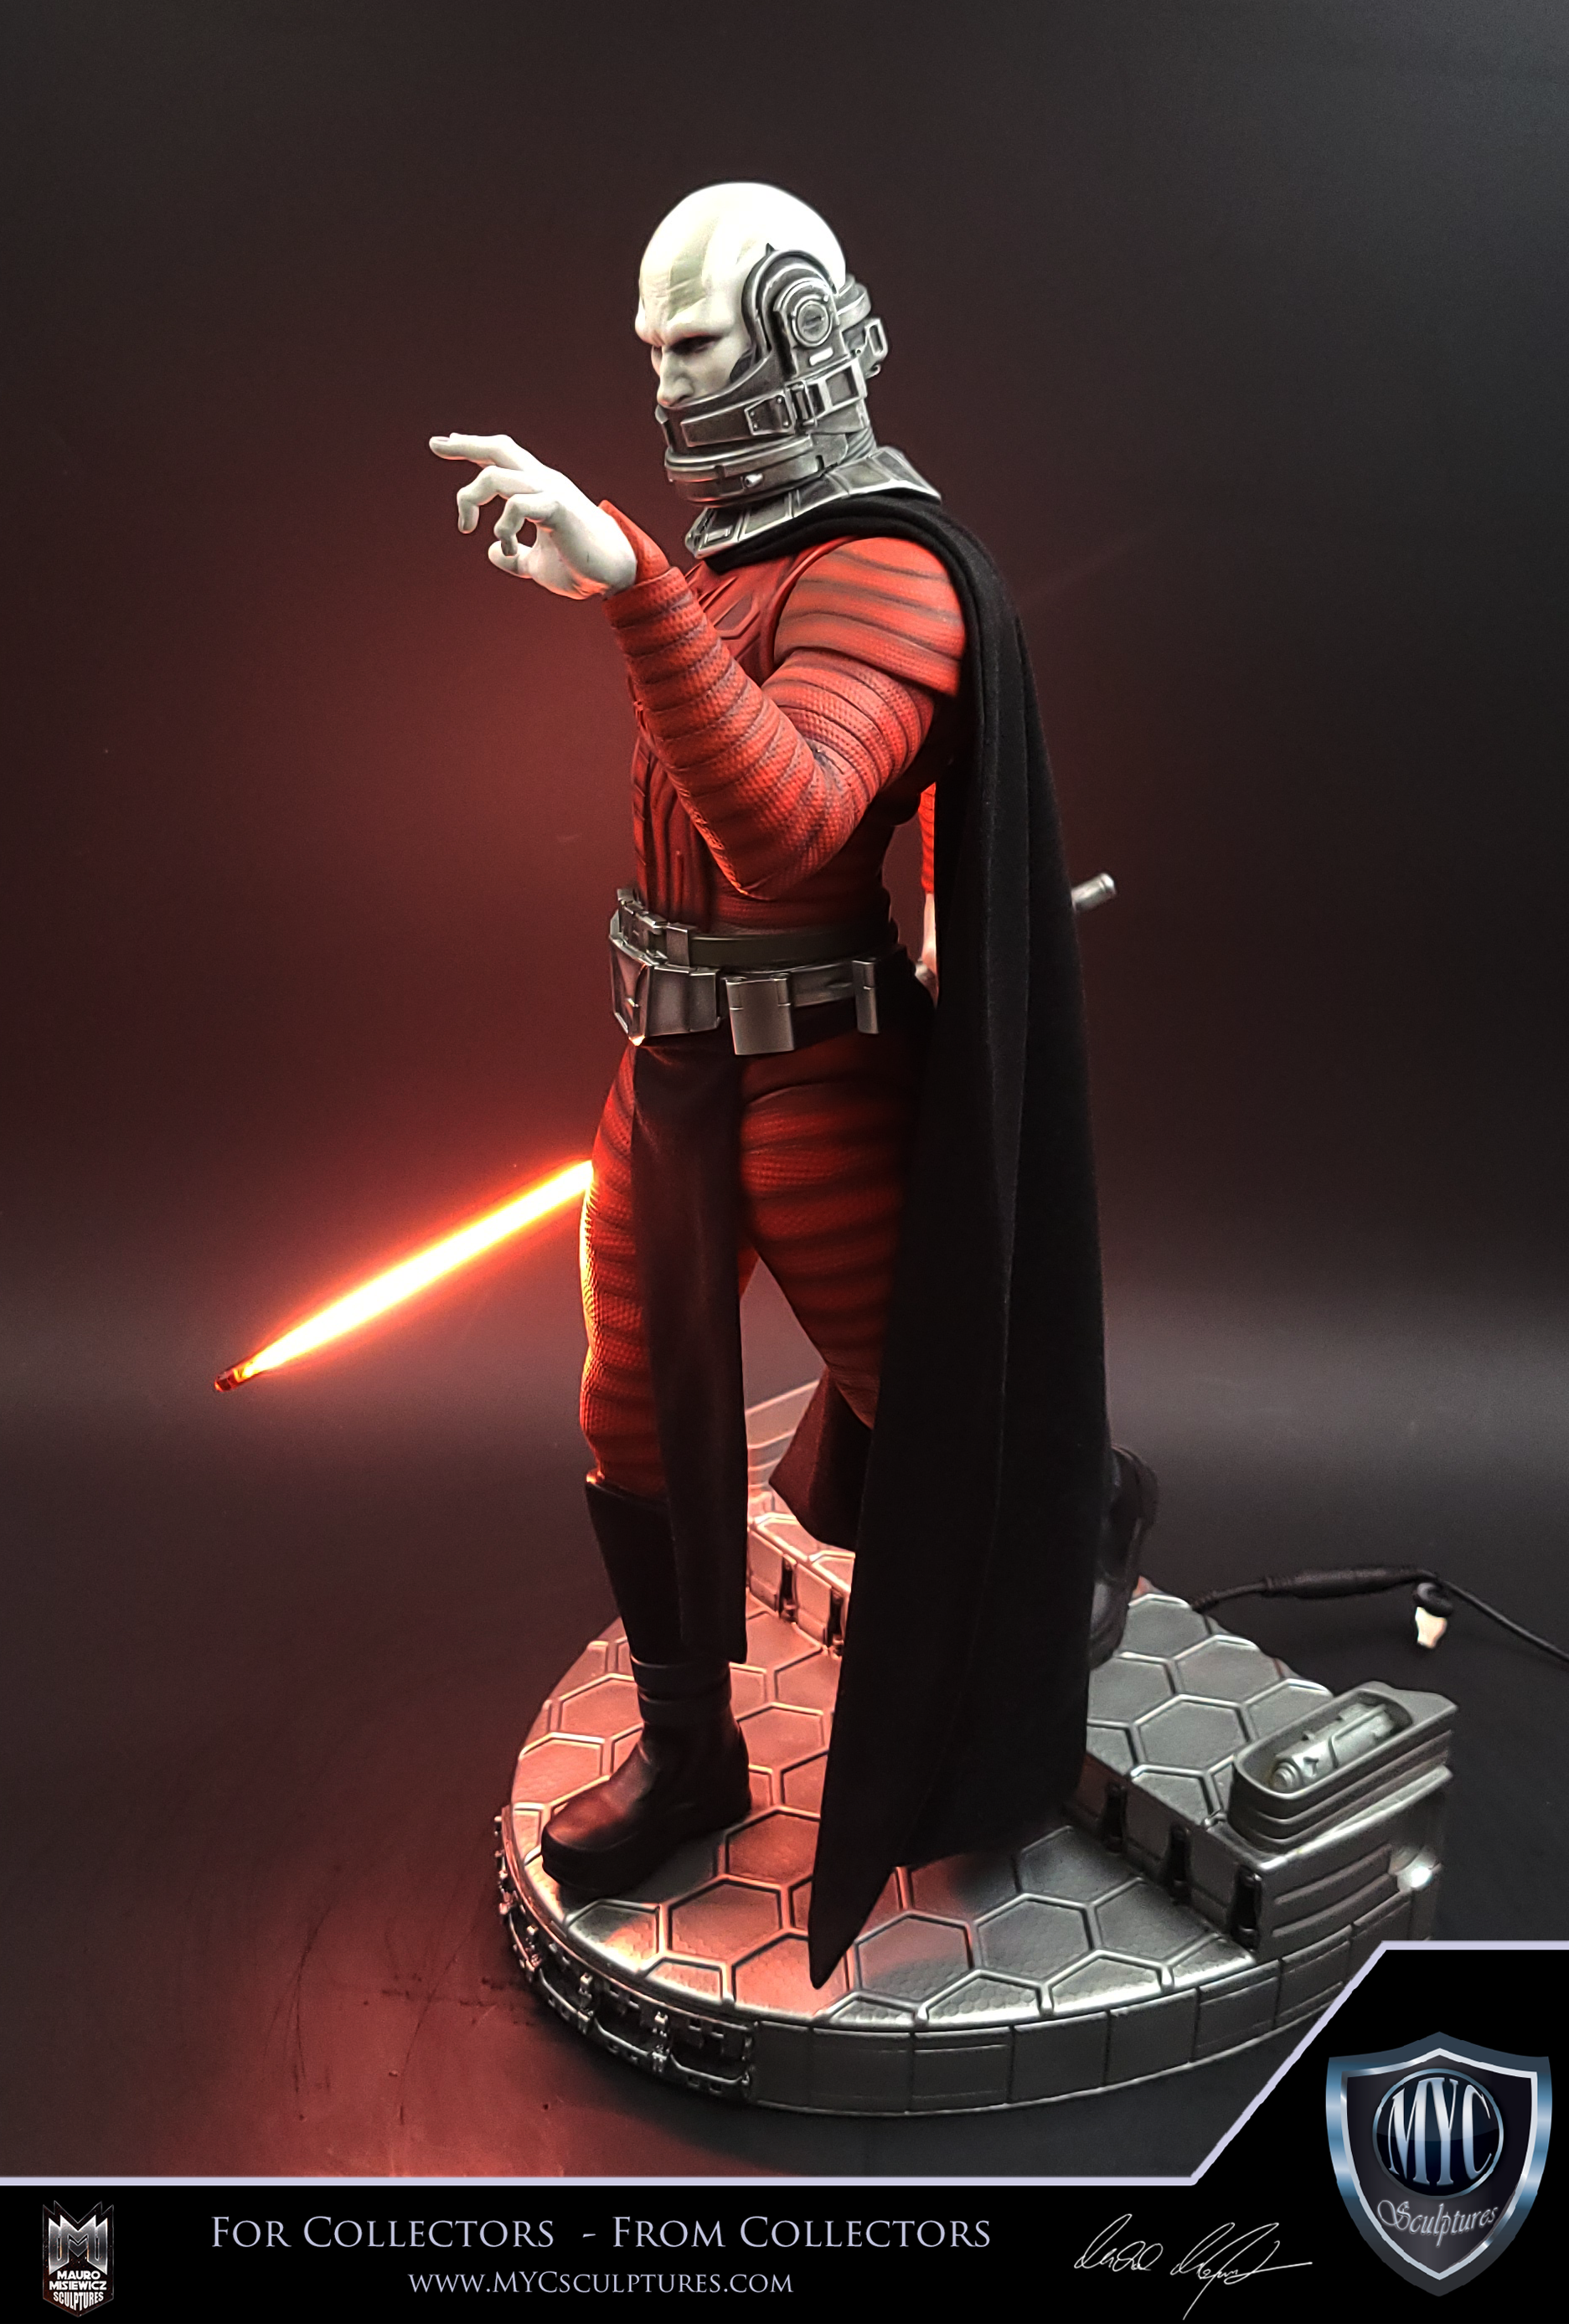 Darth_Malak_MYC_Sculptures_Statue_05